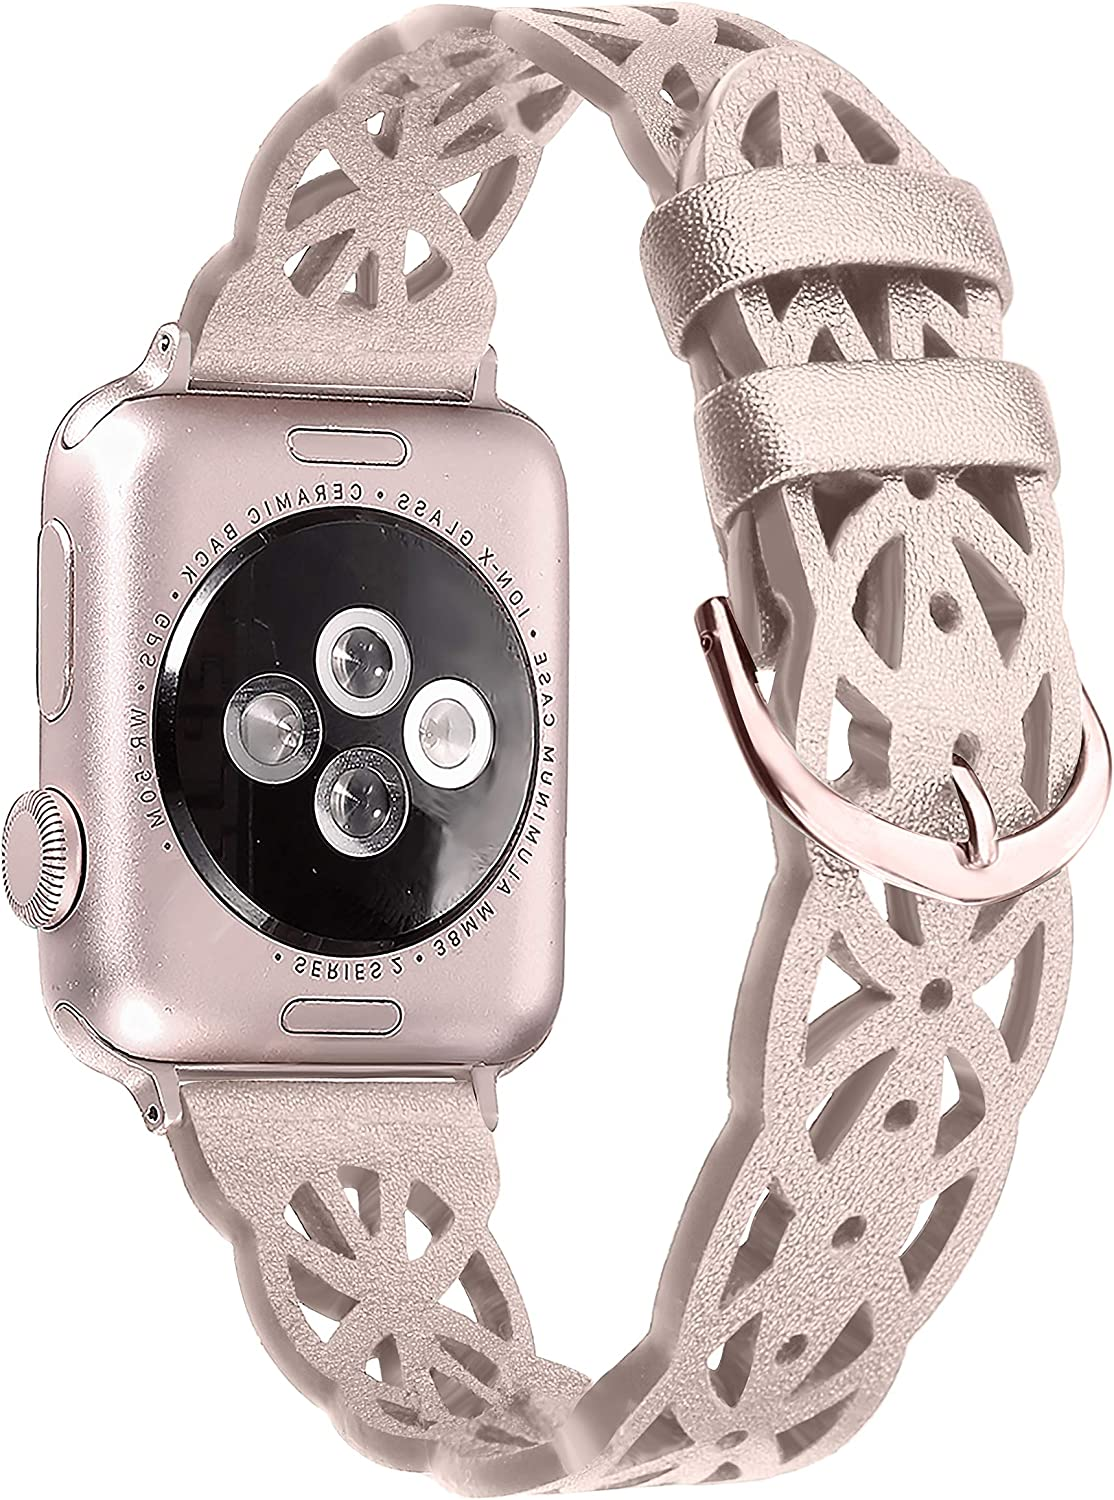 Secbolt Hollowed-Out Leather Band Compatible with Apple Watch Bands 38mm 40mm iWatch Series 6/SE/5/4/3/2/1, Elegant Top-grain Leather Wristband Strap Accessories for Women, Rose Gold